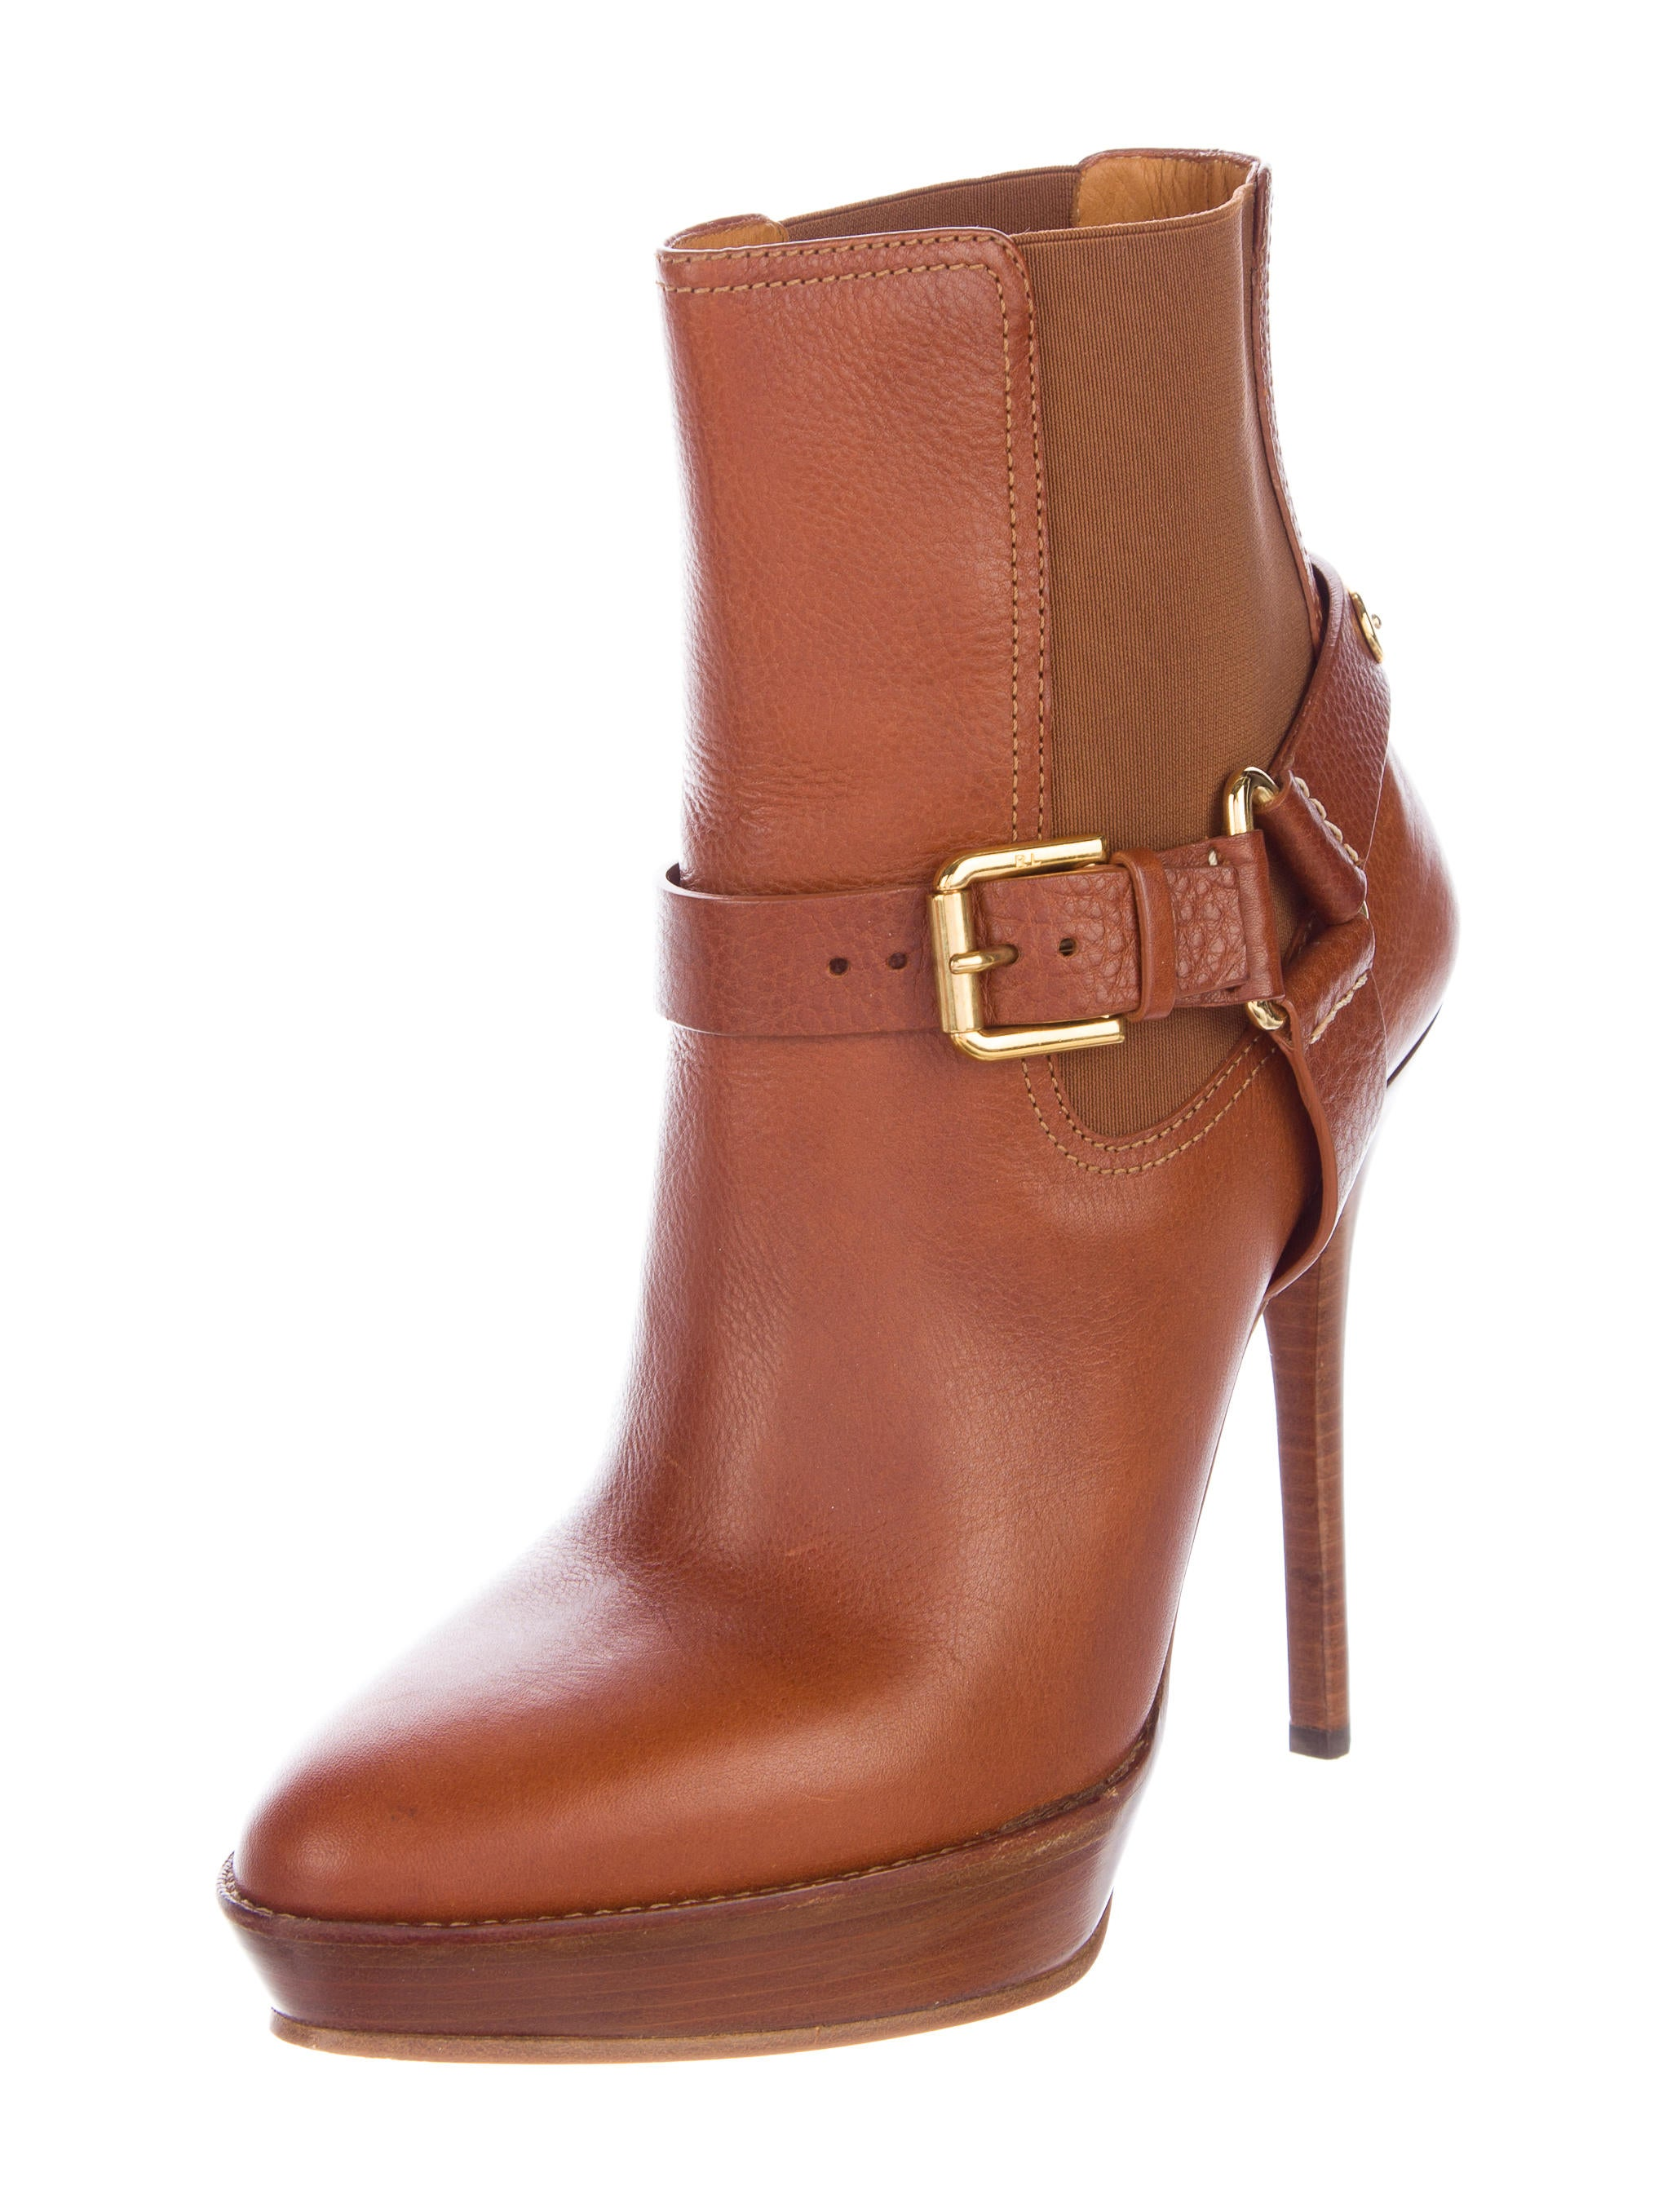 Buy low price, high quality leather platform boots with worldwide shipping on distrib-wq9rfuqq.tk